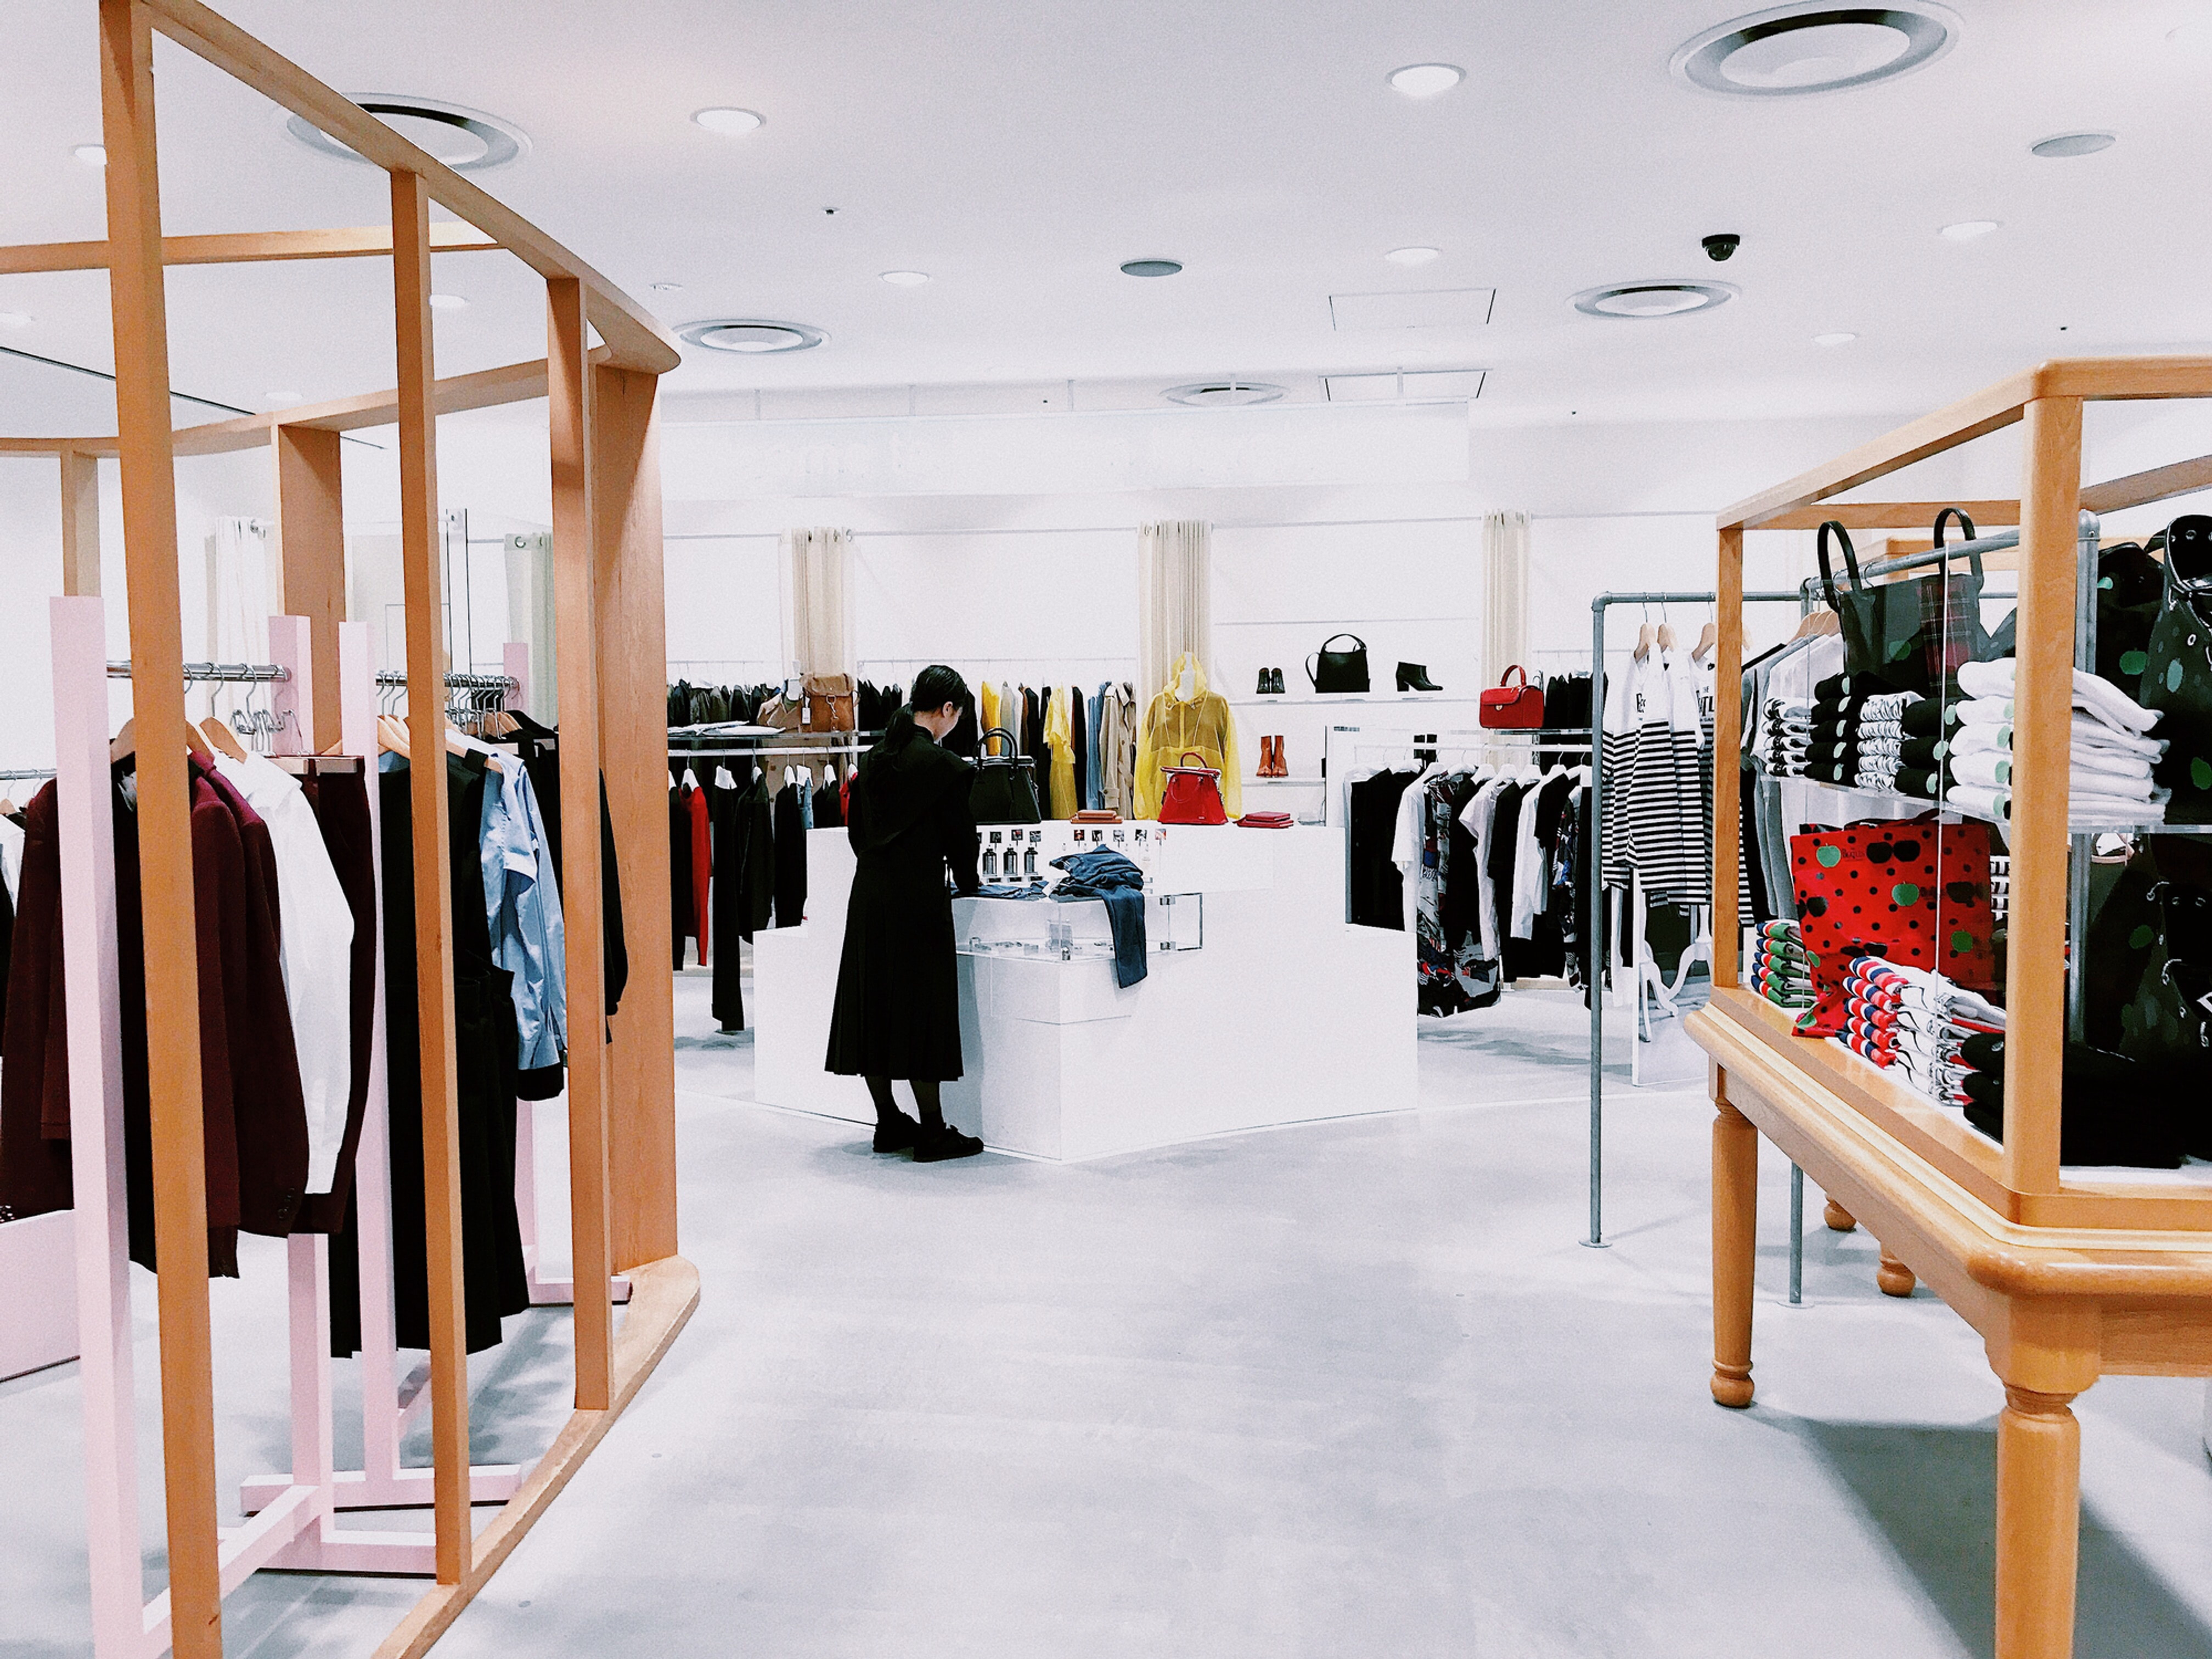 Essential Workers:  Retail Staff